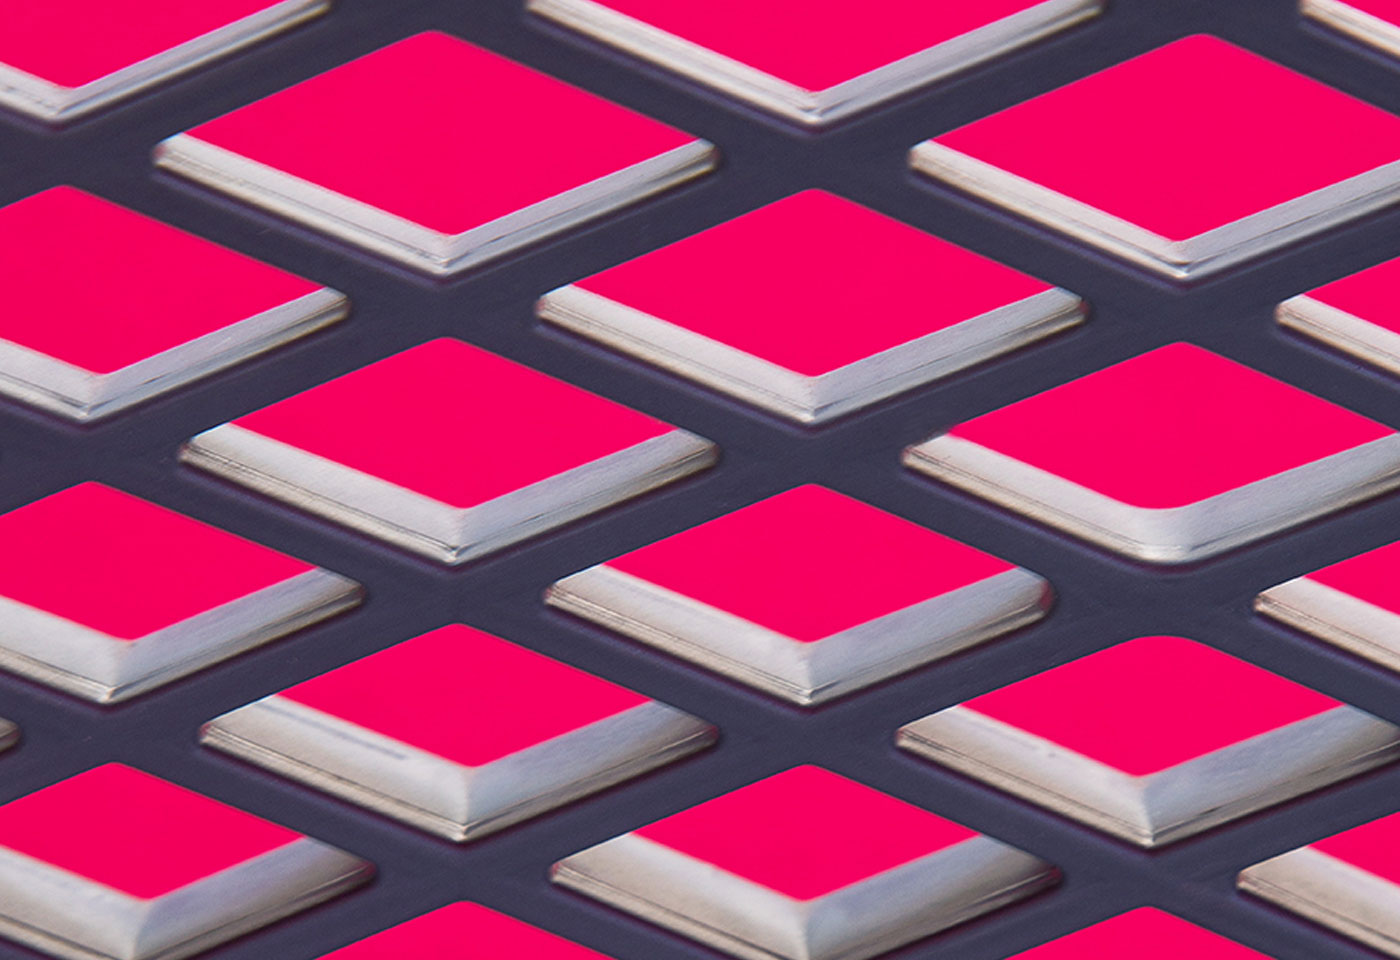 image of pattern on pink background